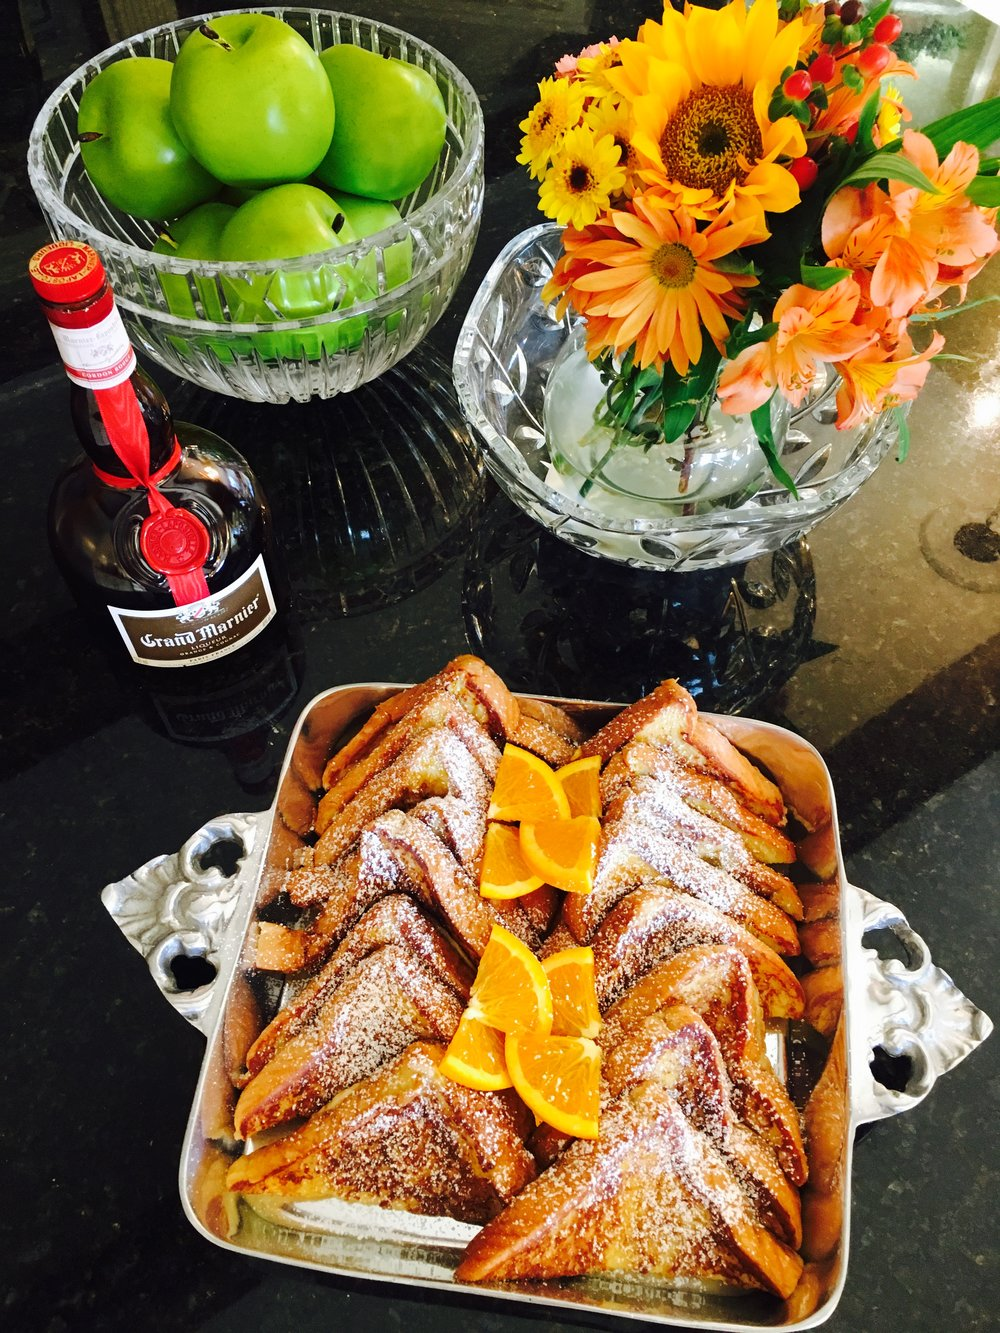 Signature Breakfast - Grand Marnier French Toast